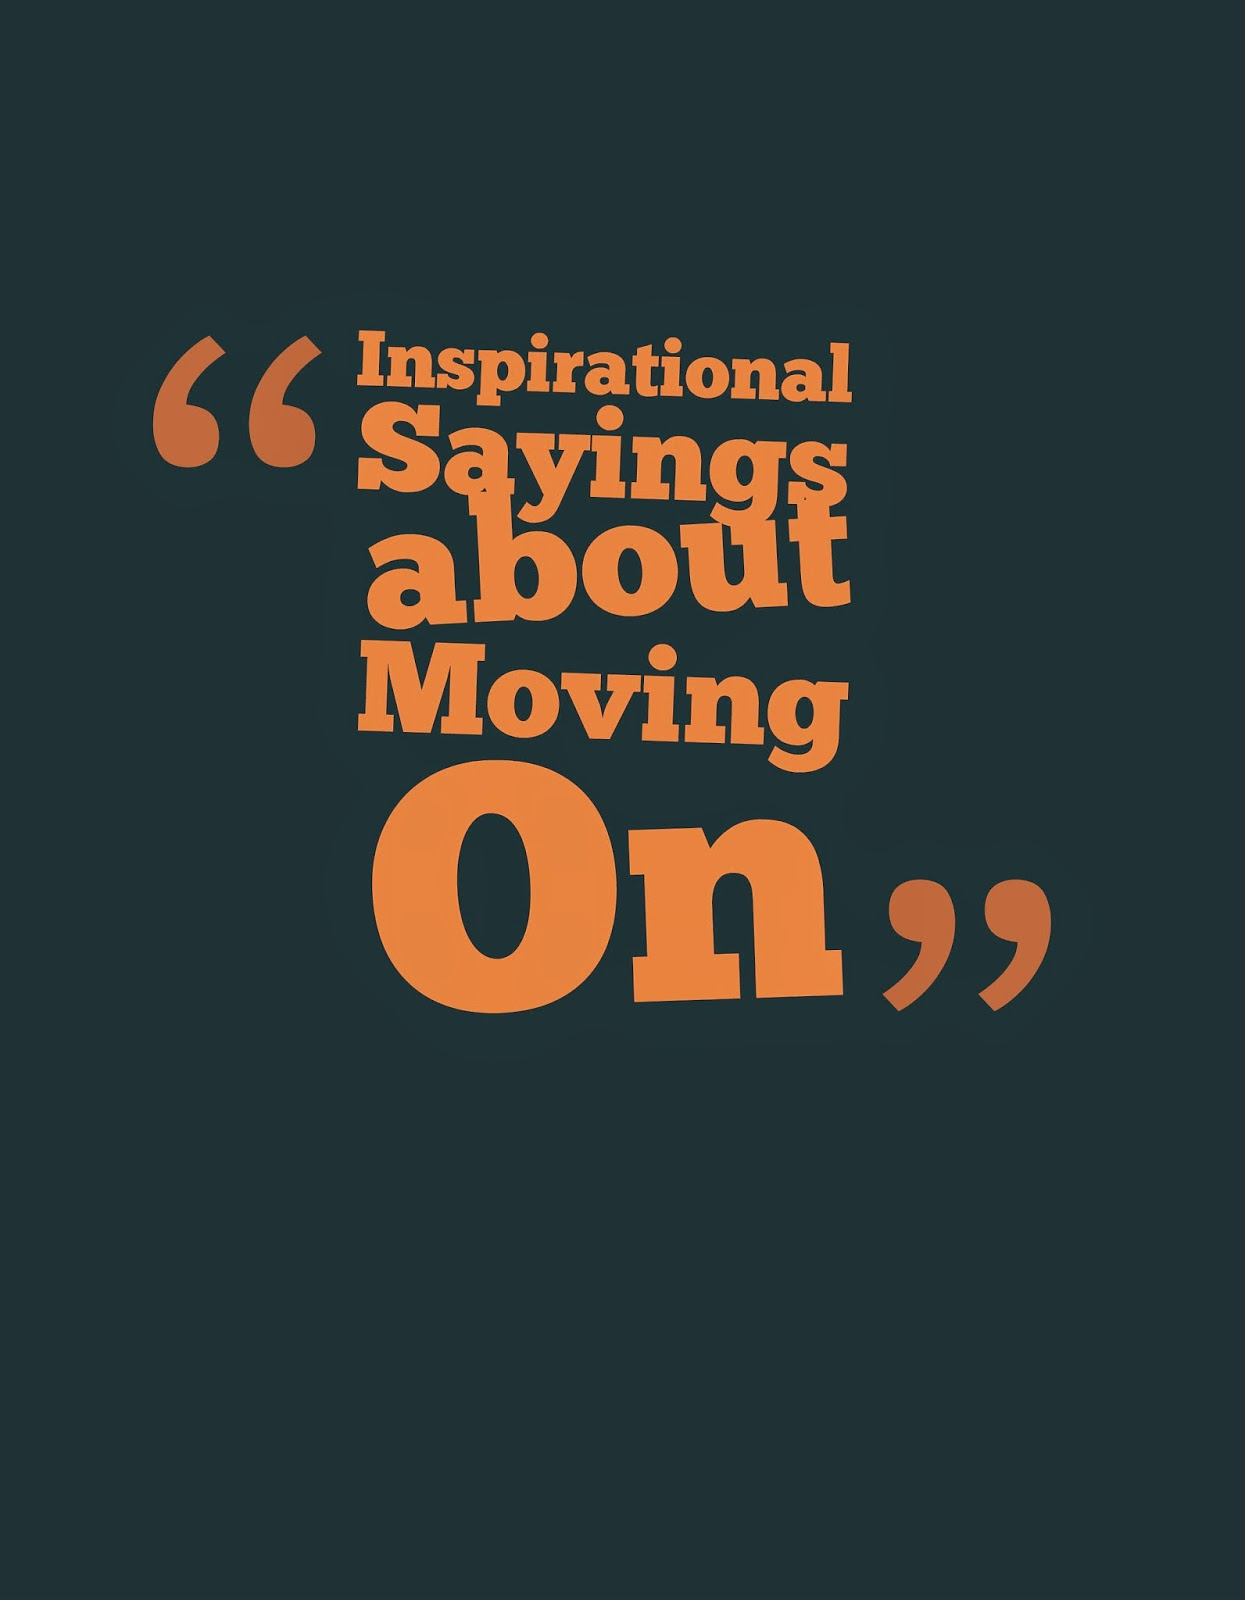 moving up quotes and sayings quotesgram